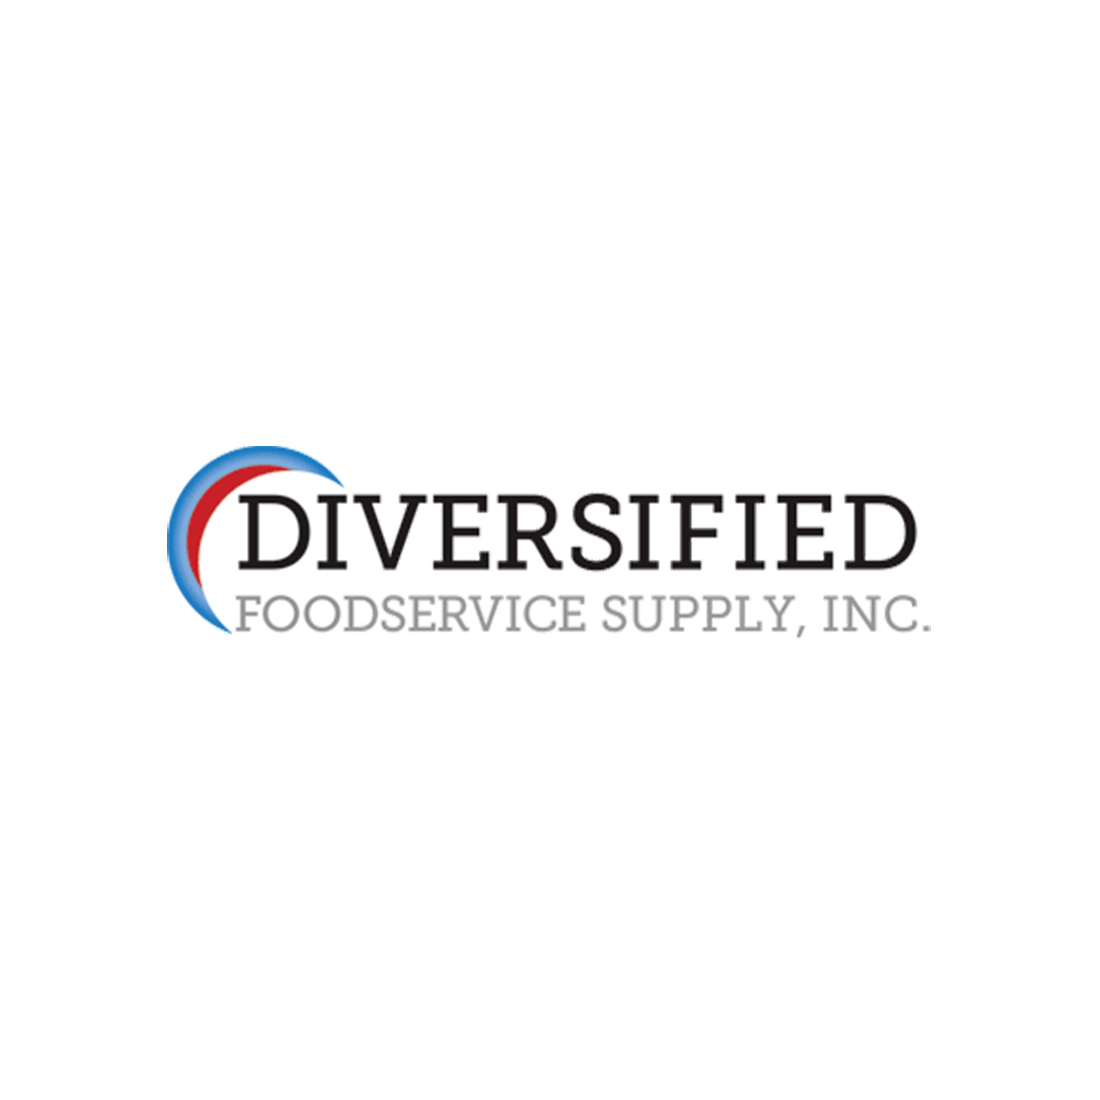 Diversified Foodservice Supply